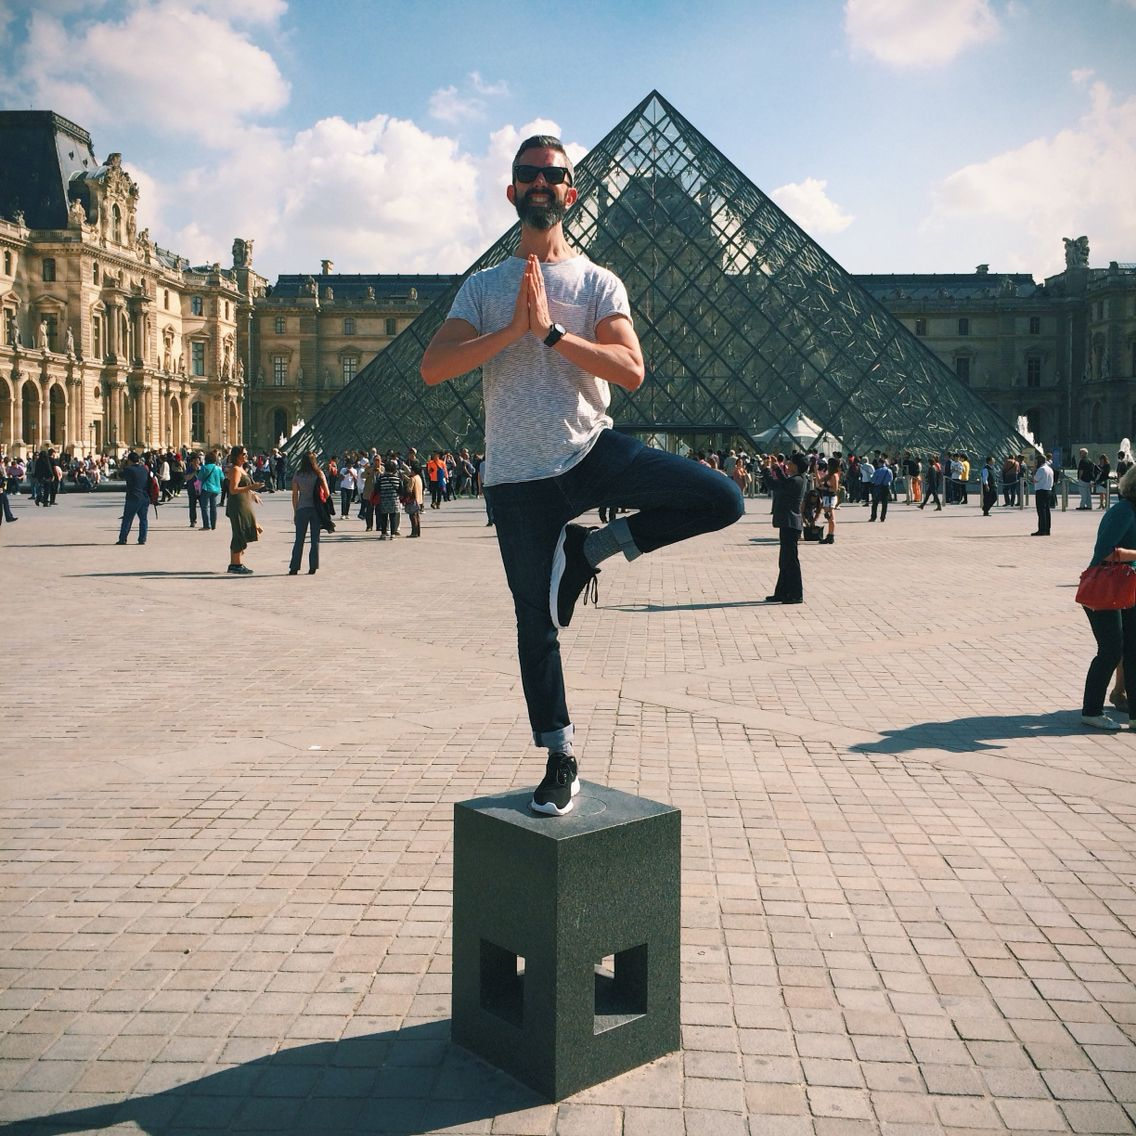 About time your Glomad team showed a little #yoganomad action across the globe. Taking our roaming asana to the streets of #Paris and #tag today as autumn served up the finest of days. Taking a class in a foreign tongue? Definitely a brain alerting experience   #globalyogi #yoga #yogatravel #yogateacher #yogaeverydamnday #yogalife #love #sunshine #happyplace #oui #glomad